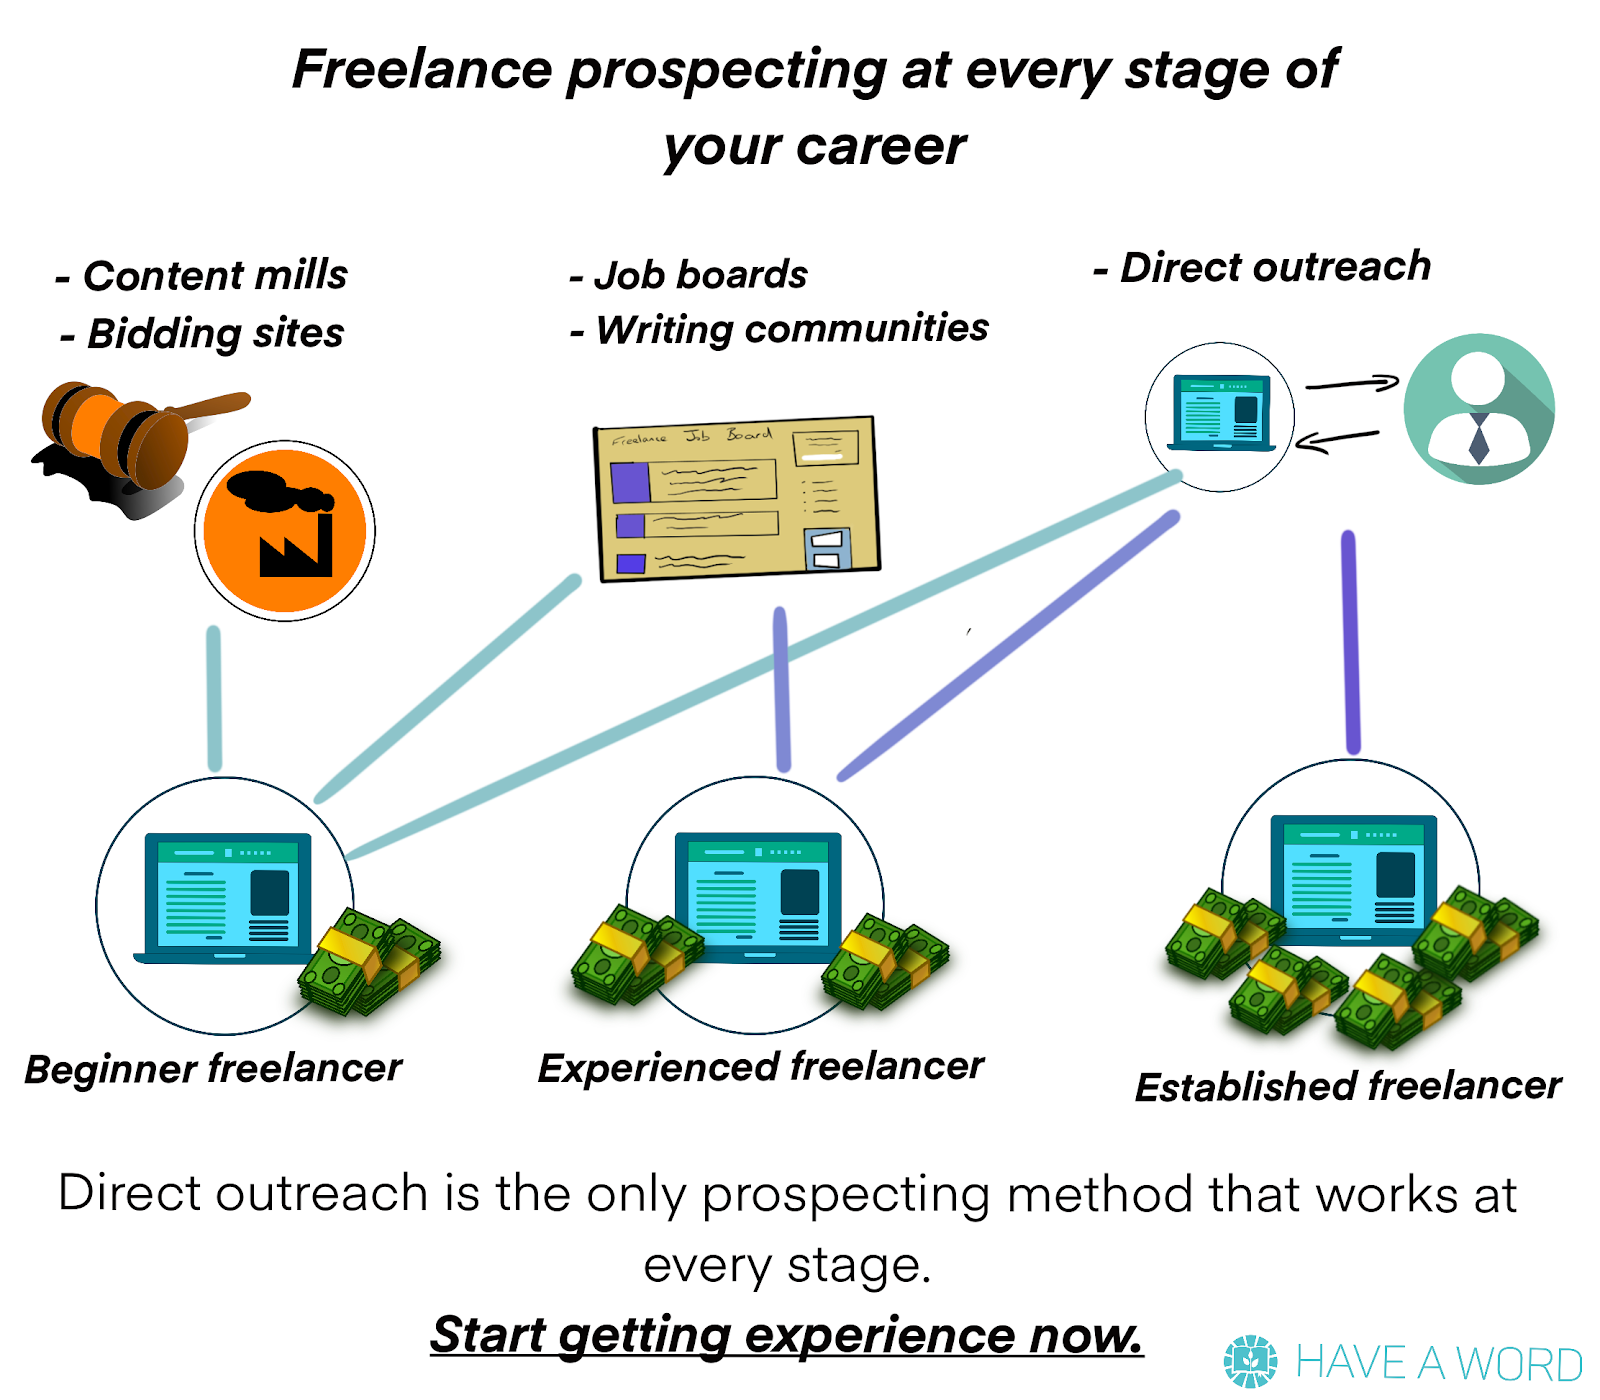 Freelance job pitching is the only method that works at every stage of your career to find freelance writing jobs